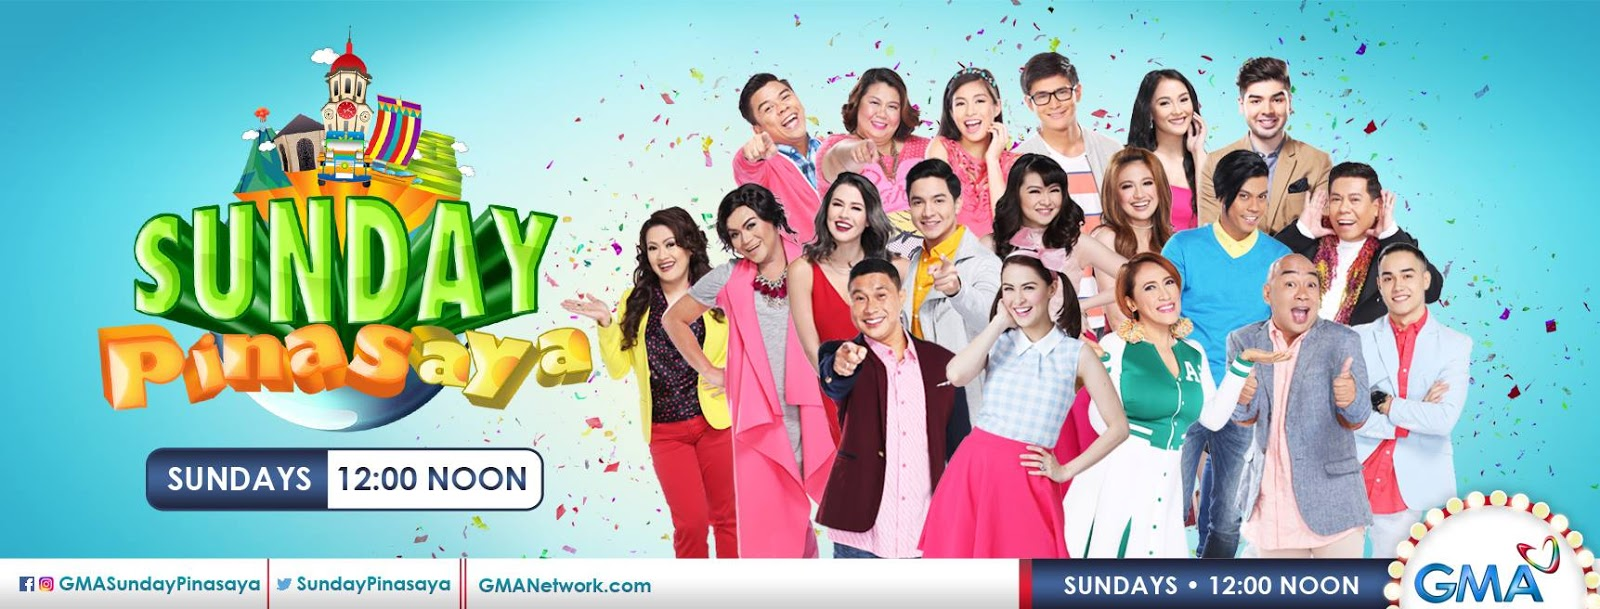 Sunday Pinasaya April 16 2017